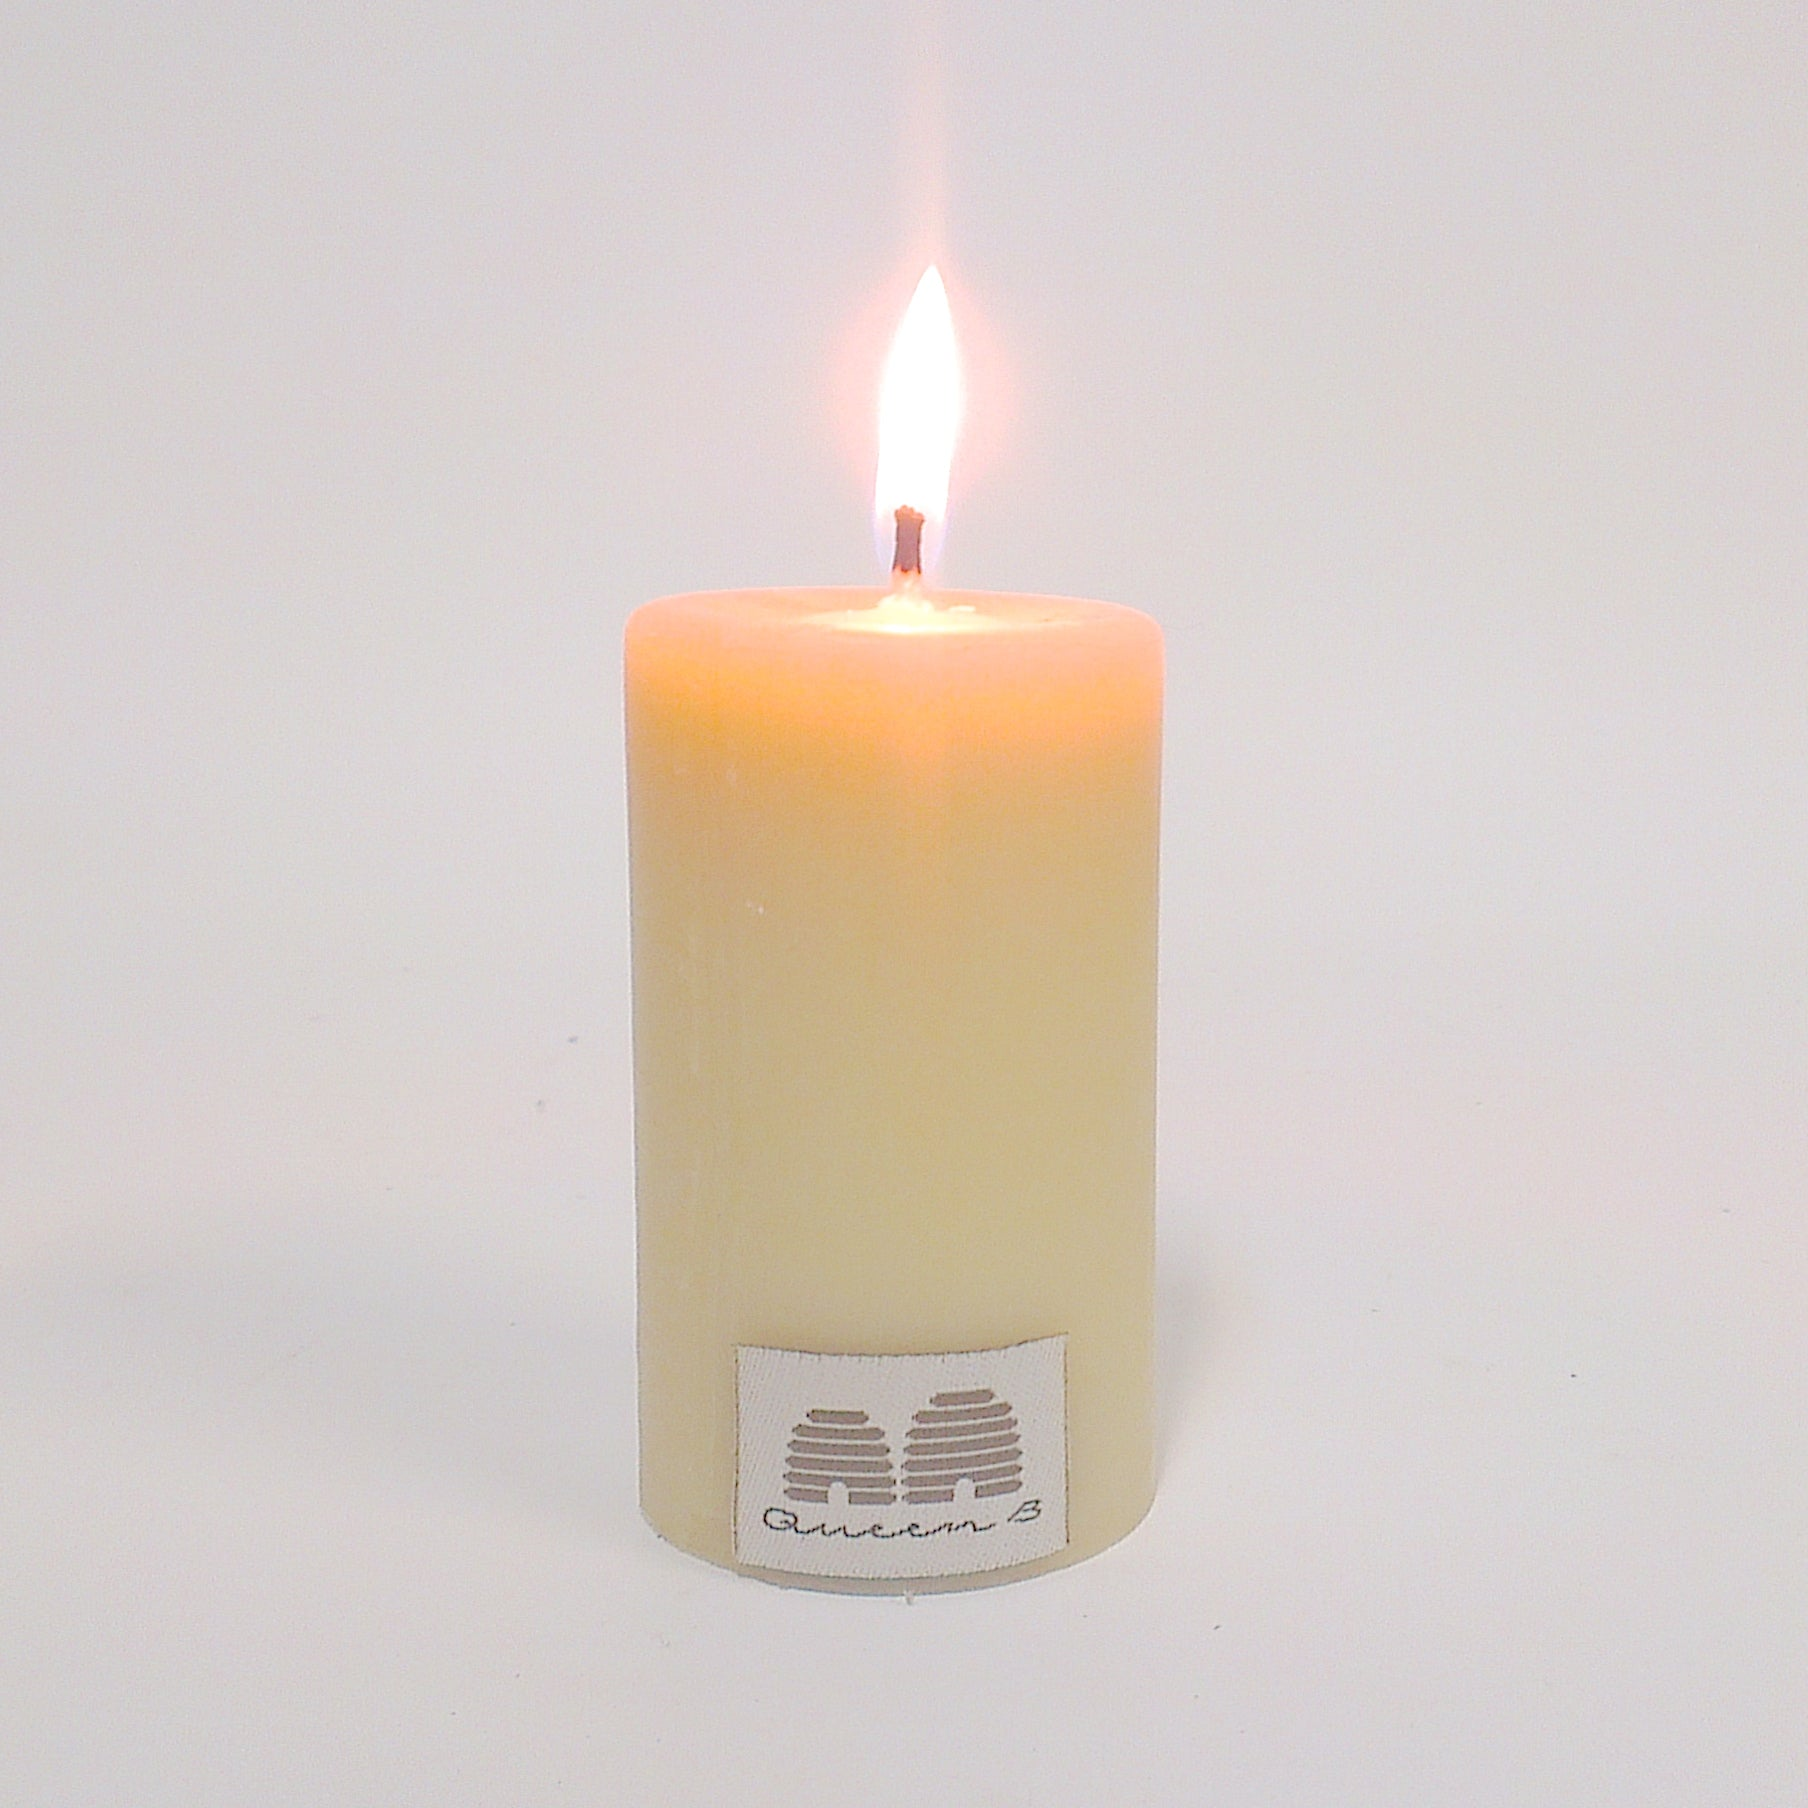 pure beeswax tealight candles burn brighter than the northern lights